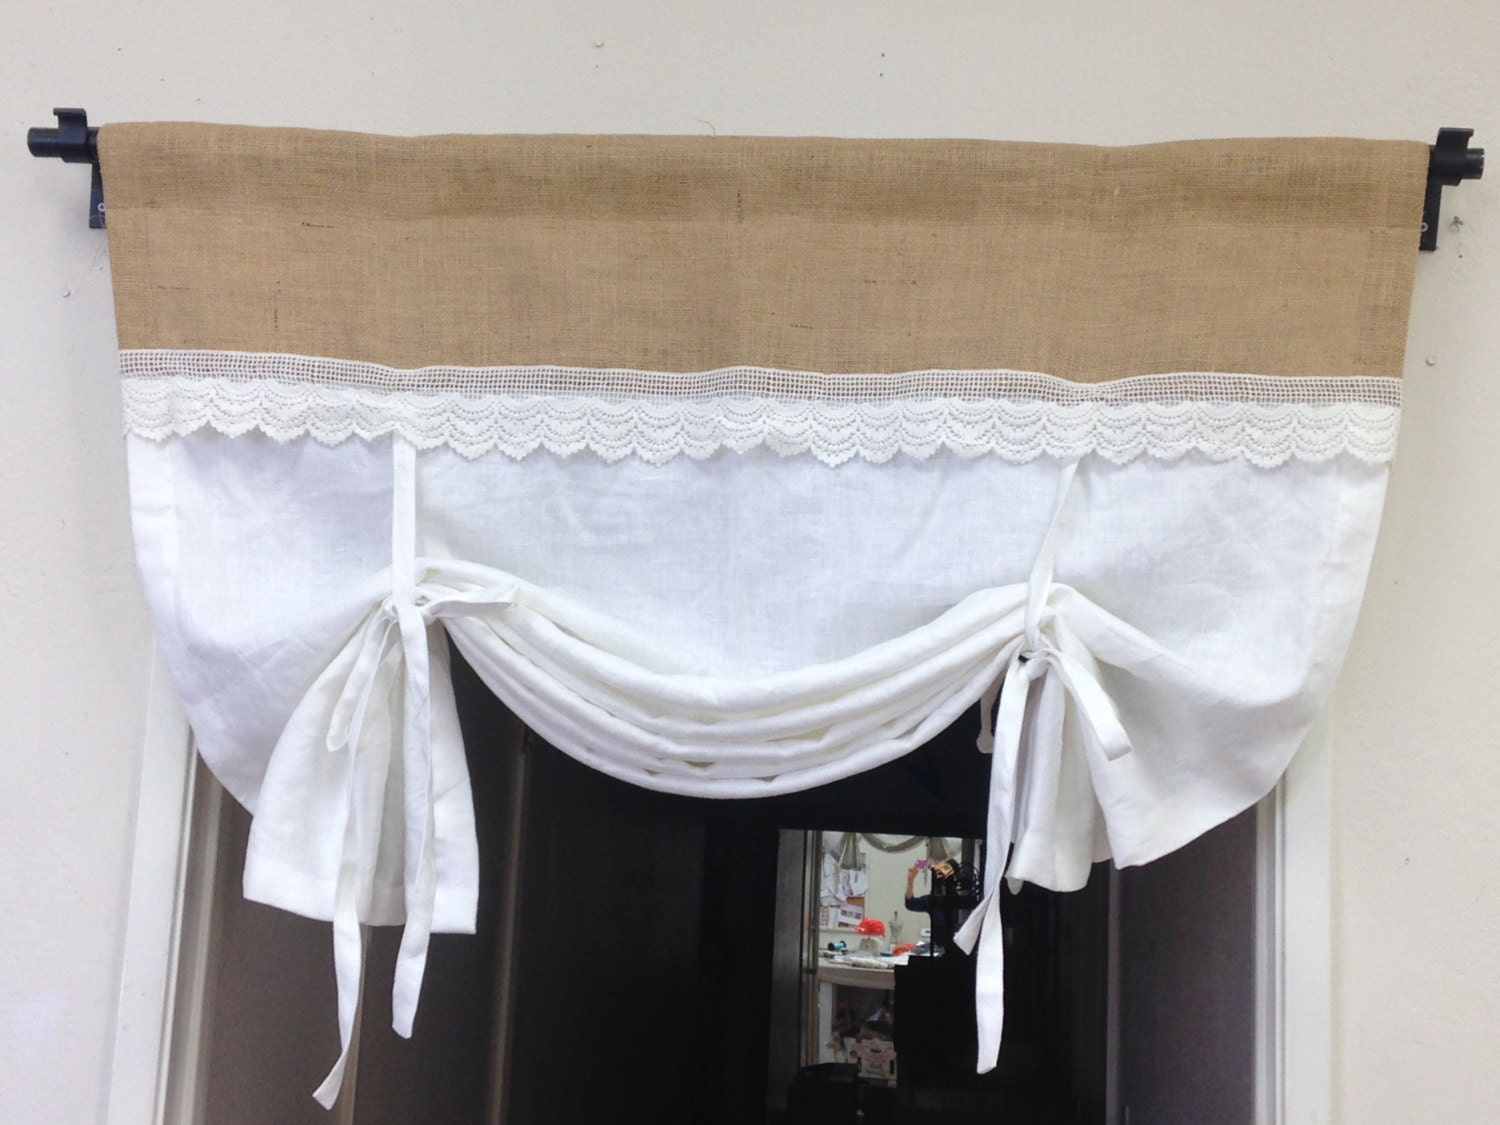 linen tie up curtains white pull up valance shabby by pillowpuff. Black Bedroom Furniture Sets. Home Design Ideas